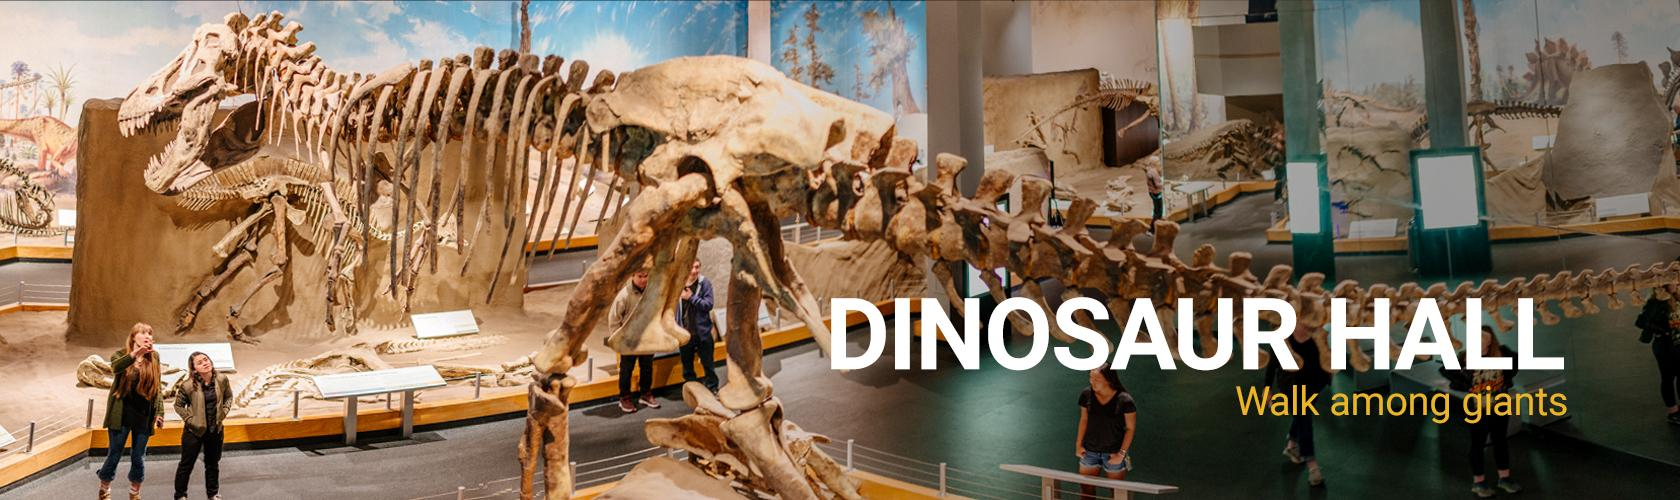 dinosaur-hall-exhibit-slider